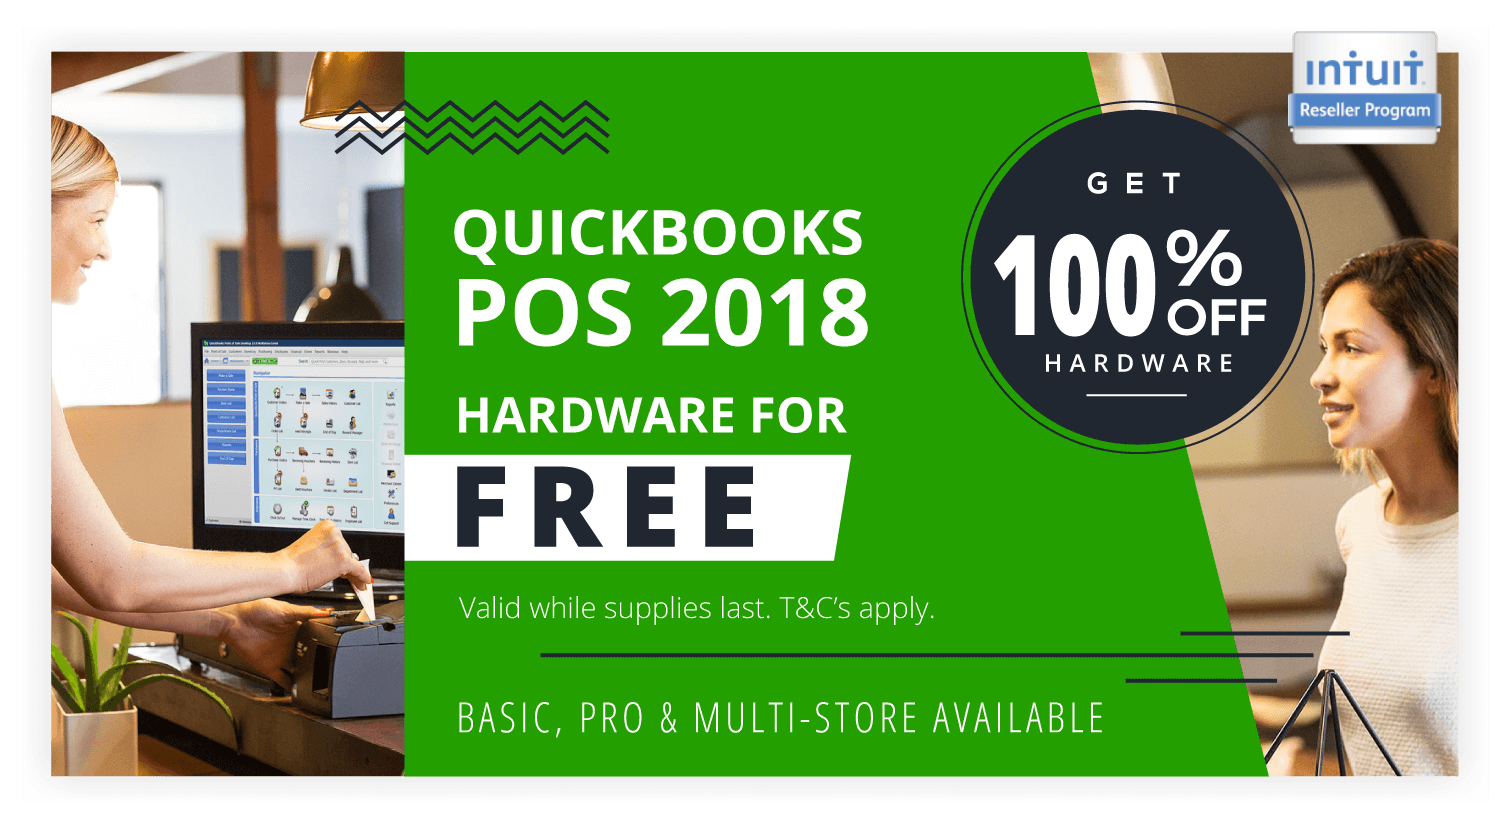 touchsuite-quickbooks-pos-2018-free-equipment-offer